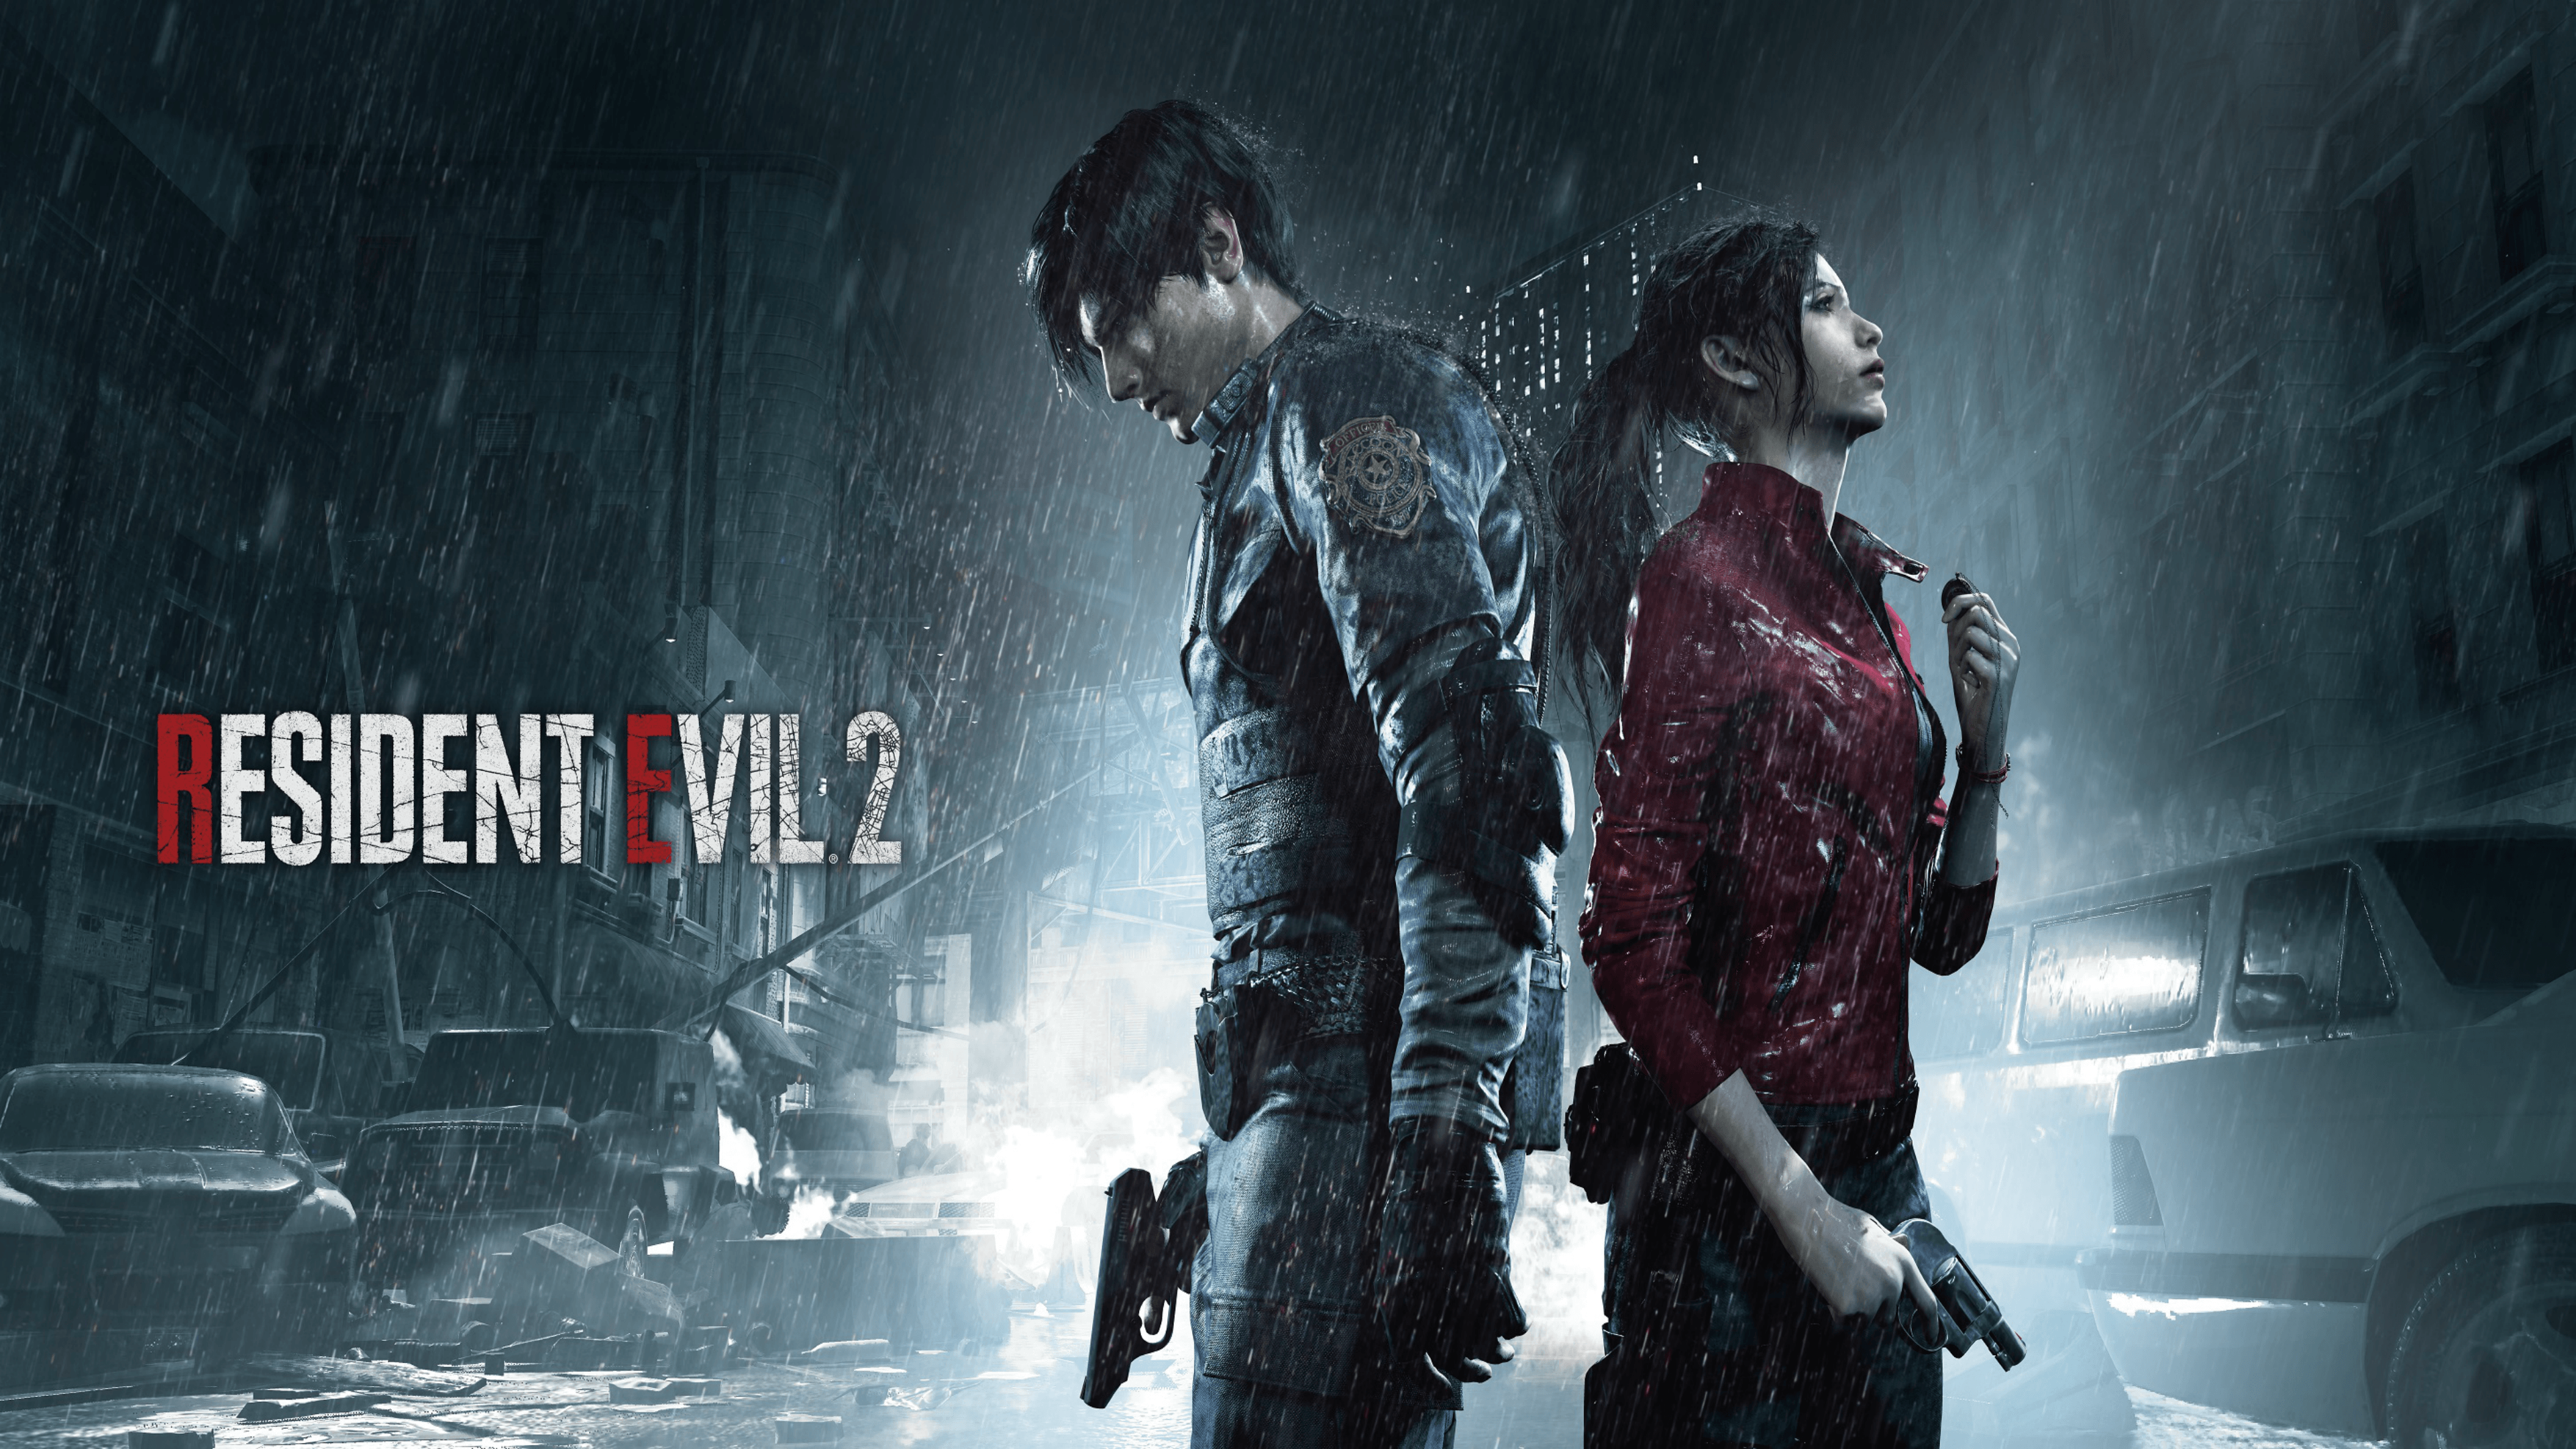 Resident Evil 6 Wallpapers Top Free Resident Evil 6 Backgrounds